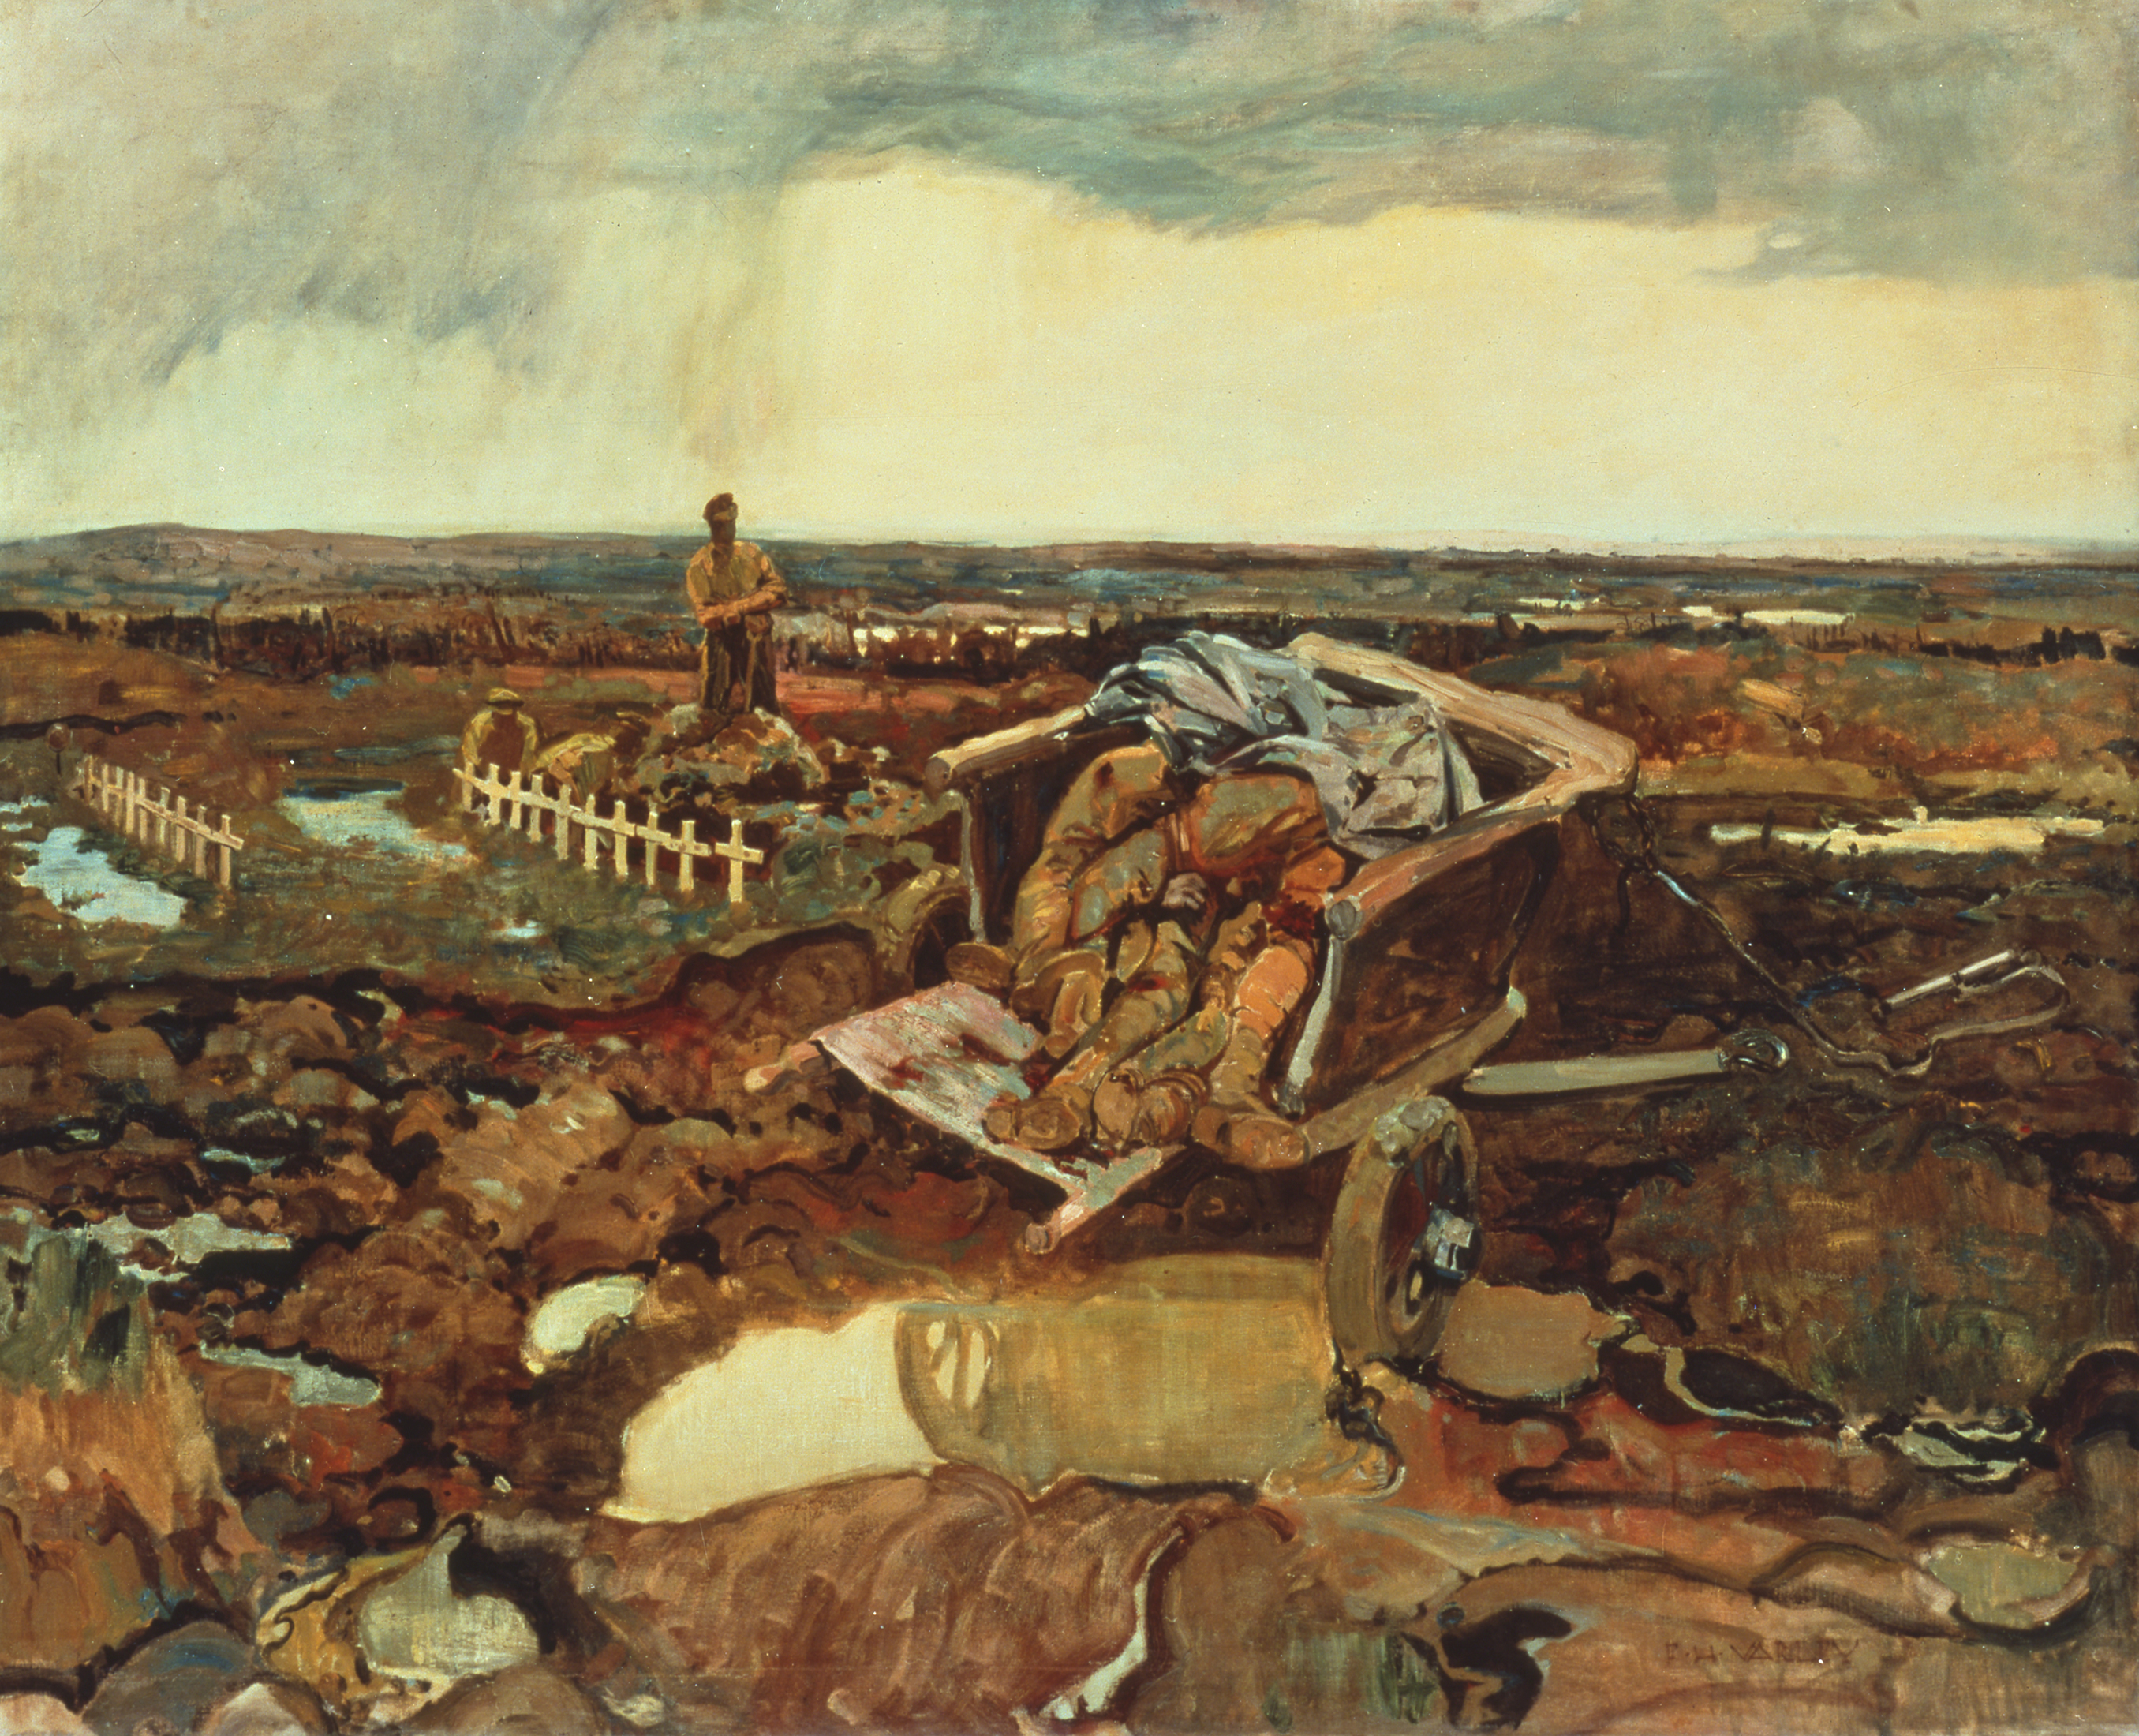 A cart mired in mud occupies the centre of this painting. It is piled with corpses. Farther back, a man leaning on a shovel stands near a row of white crosses.